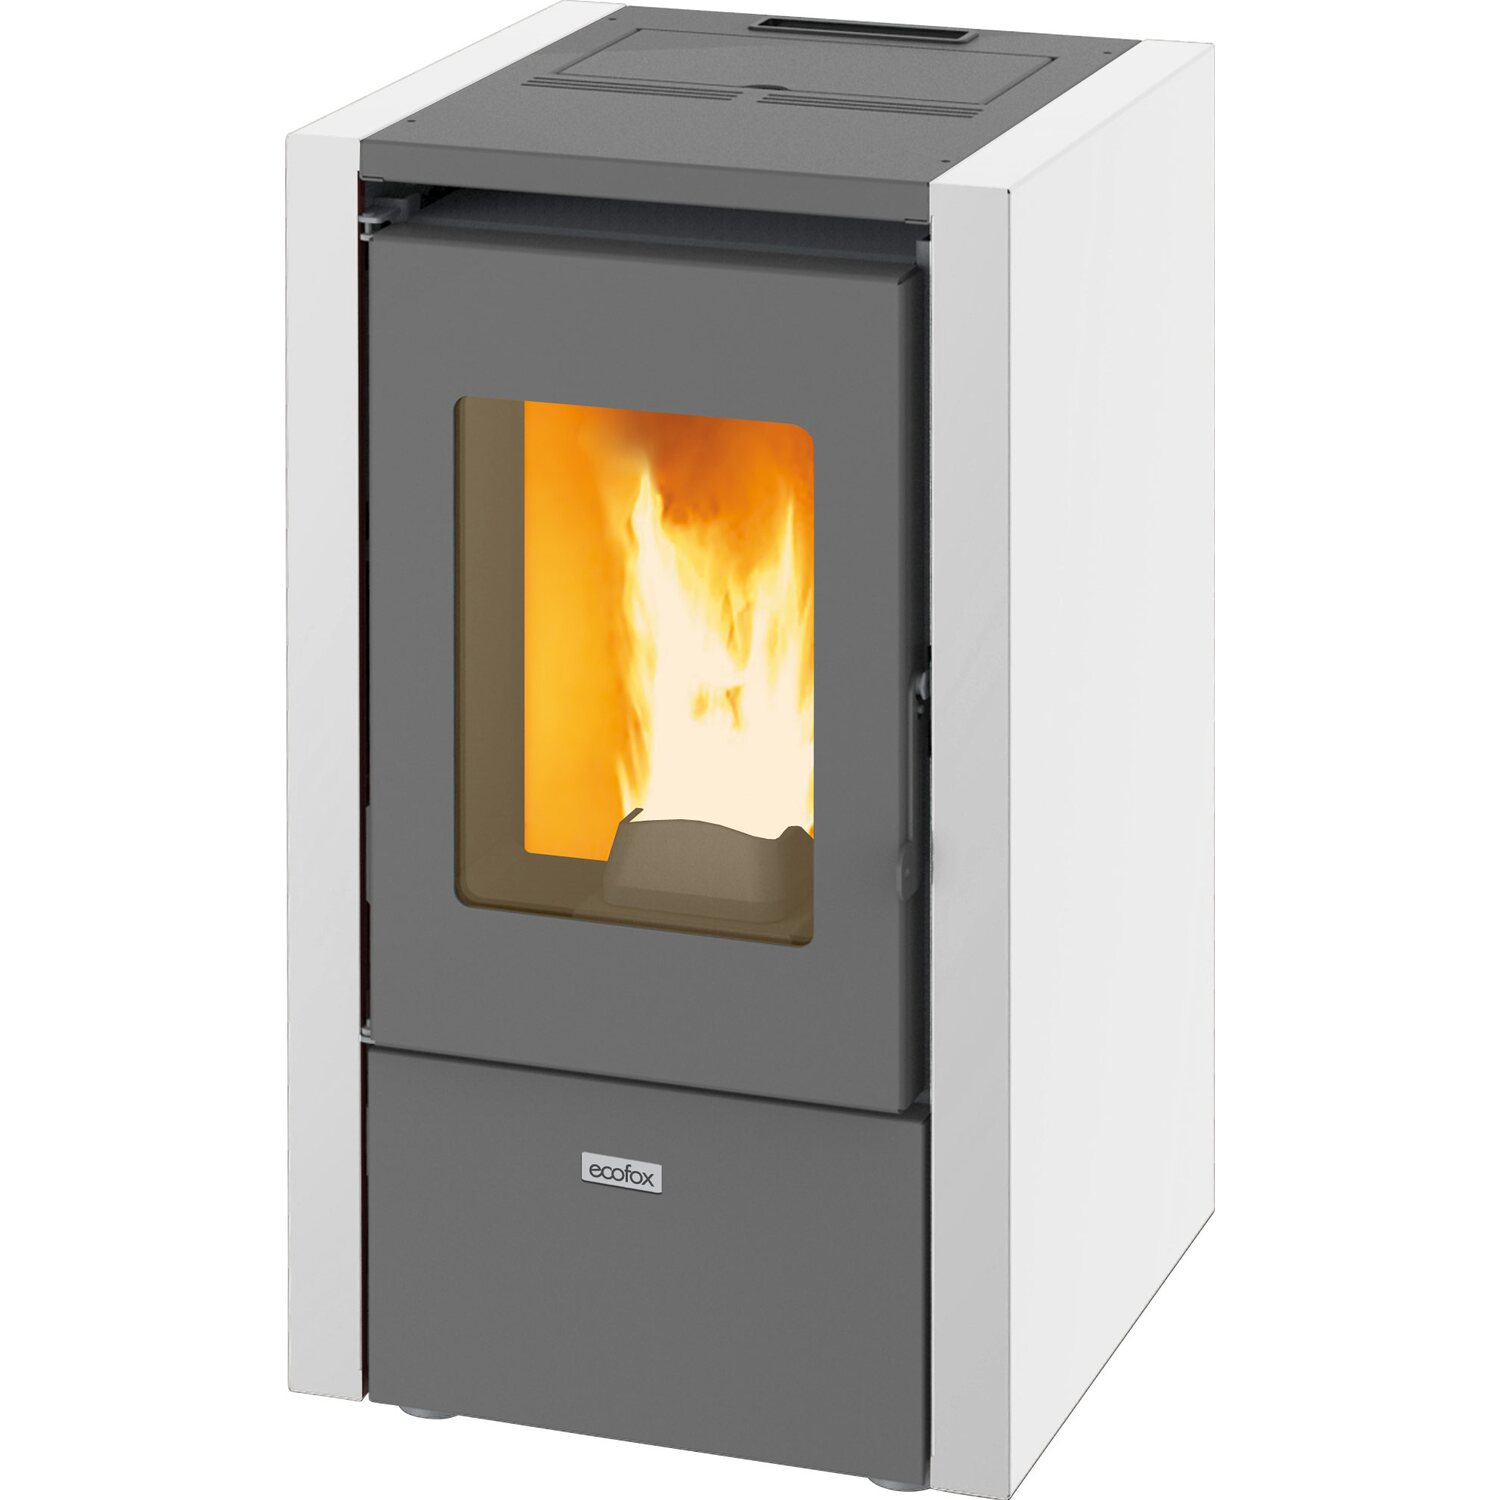 Stufa pallet awesome stufe a pellet 8 kw pictures skilifts us - Stufa a pellet a incasso ...